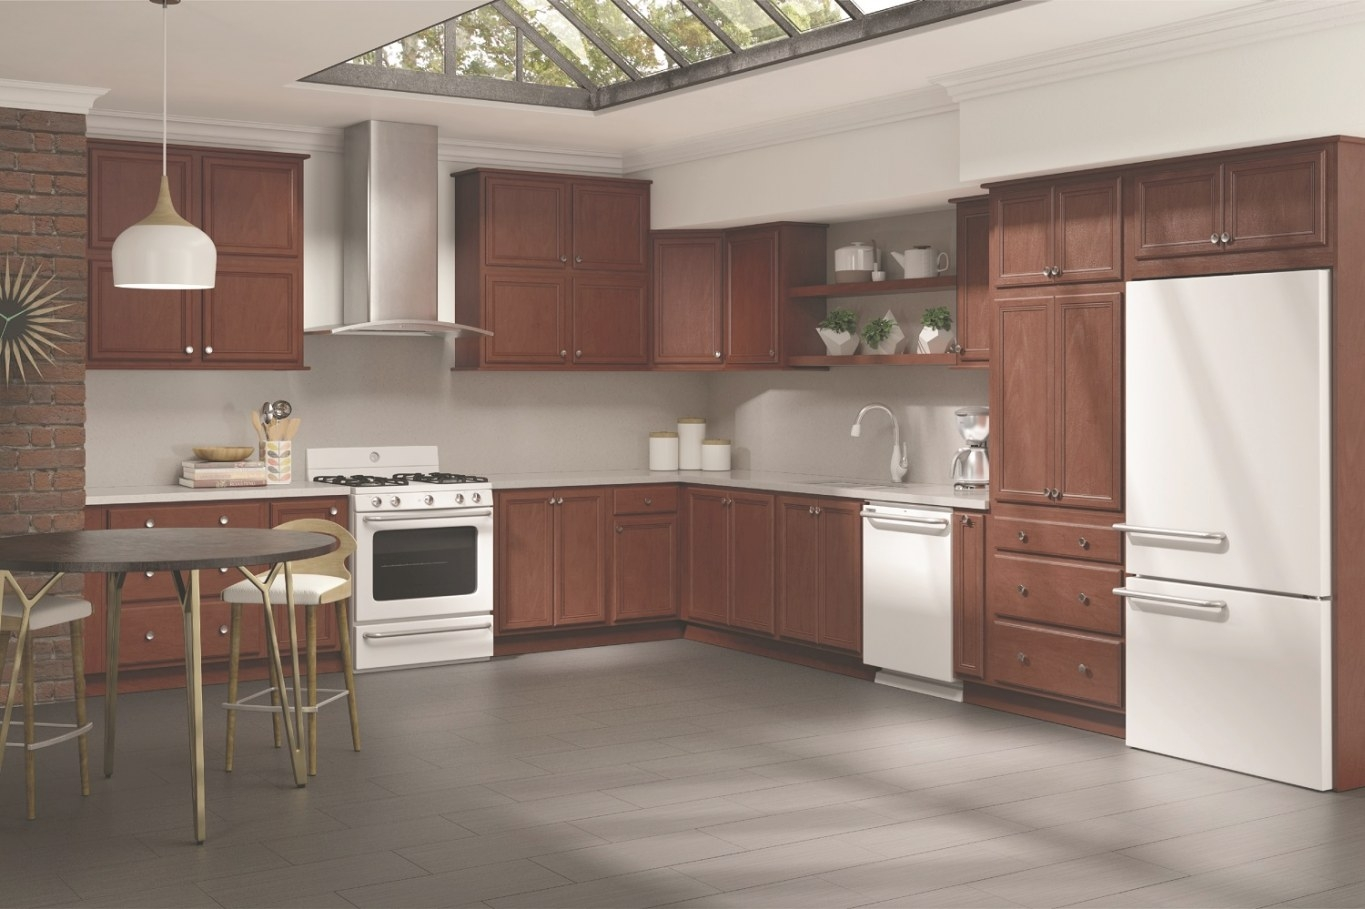 Kitchen Cabinets Company | Great American Kitchen & Bath throughout American Kitchen And Bath